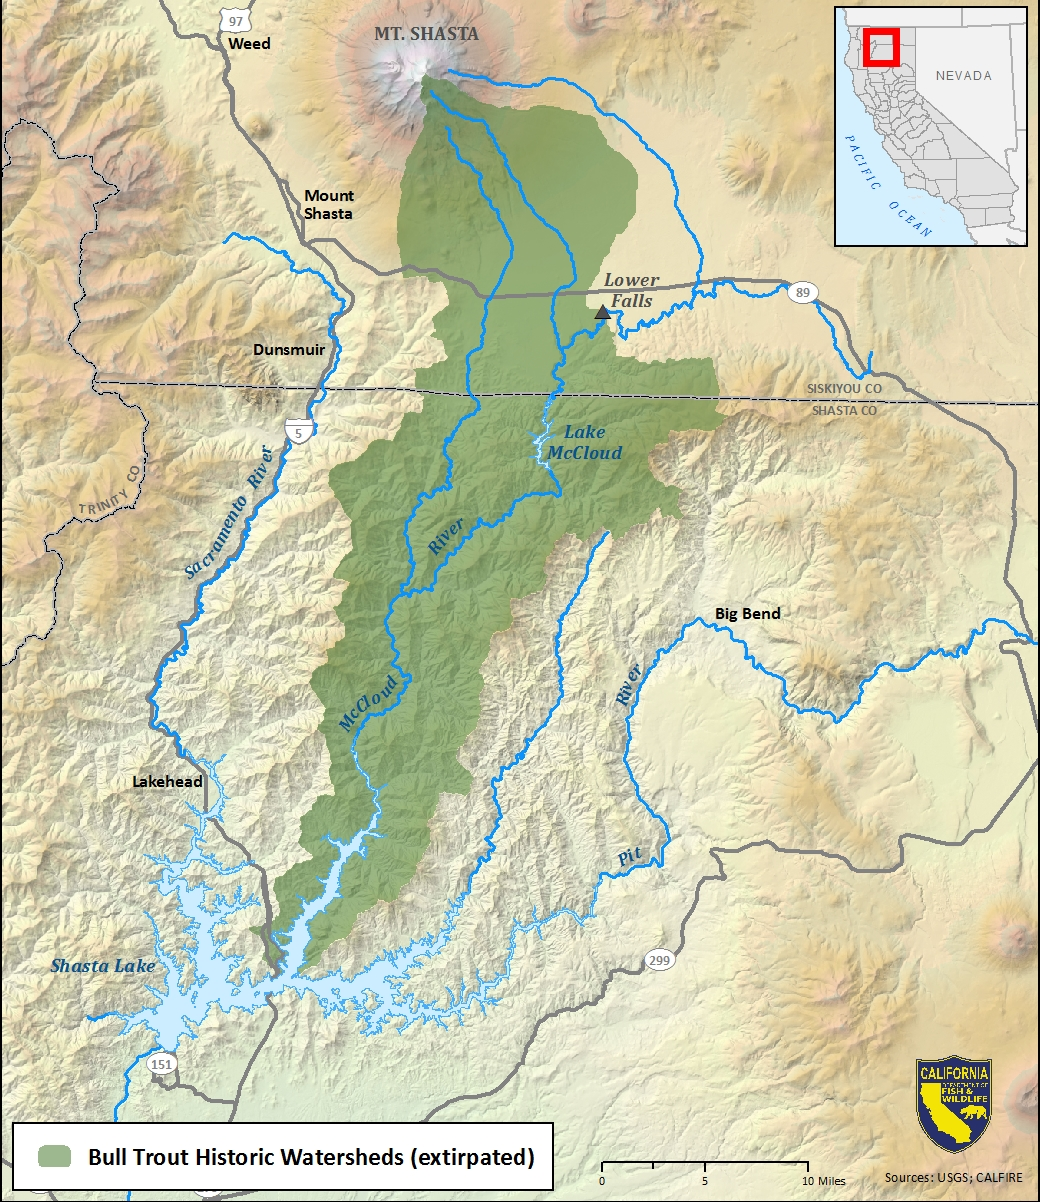 Map of bull trout historic watersheds-link opens in new window